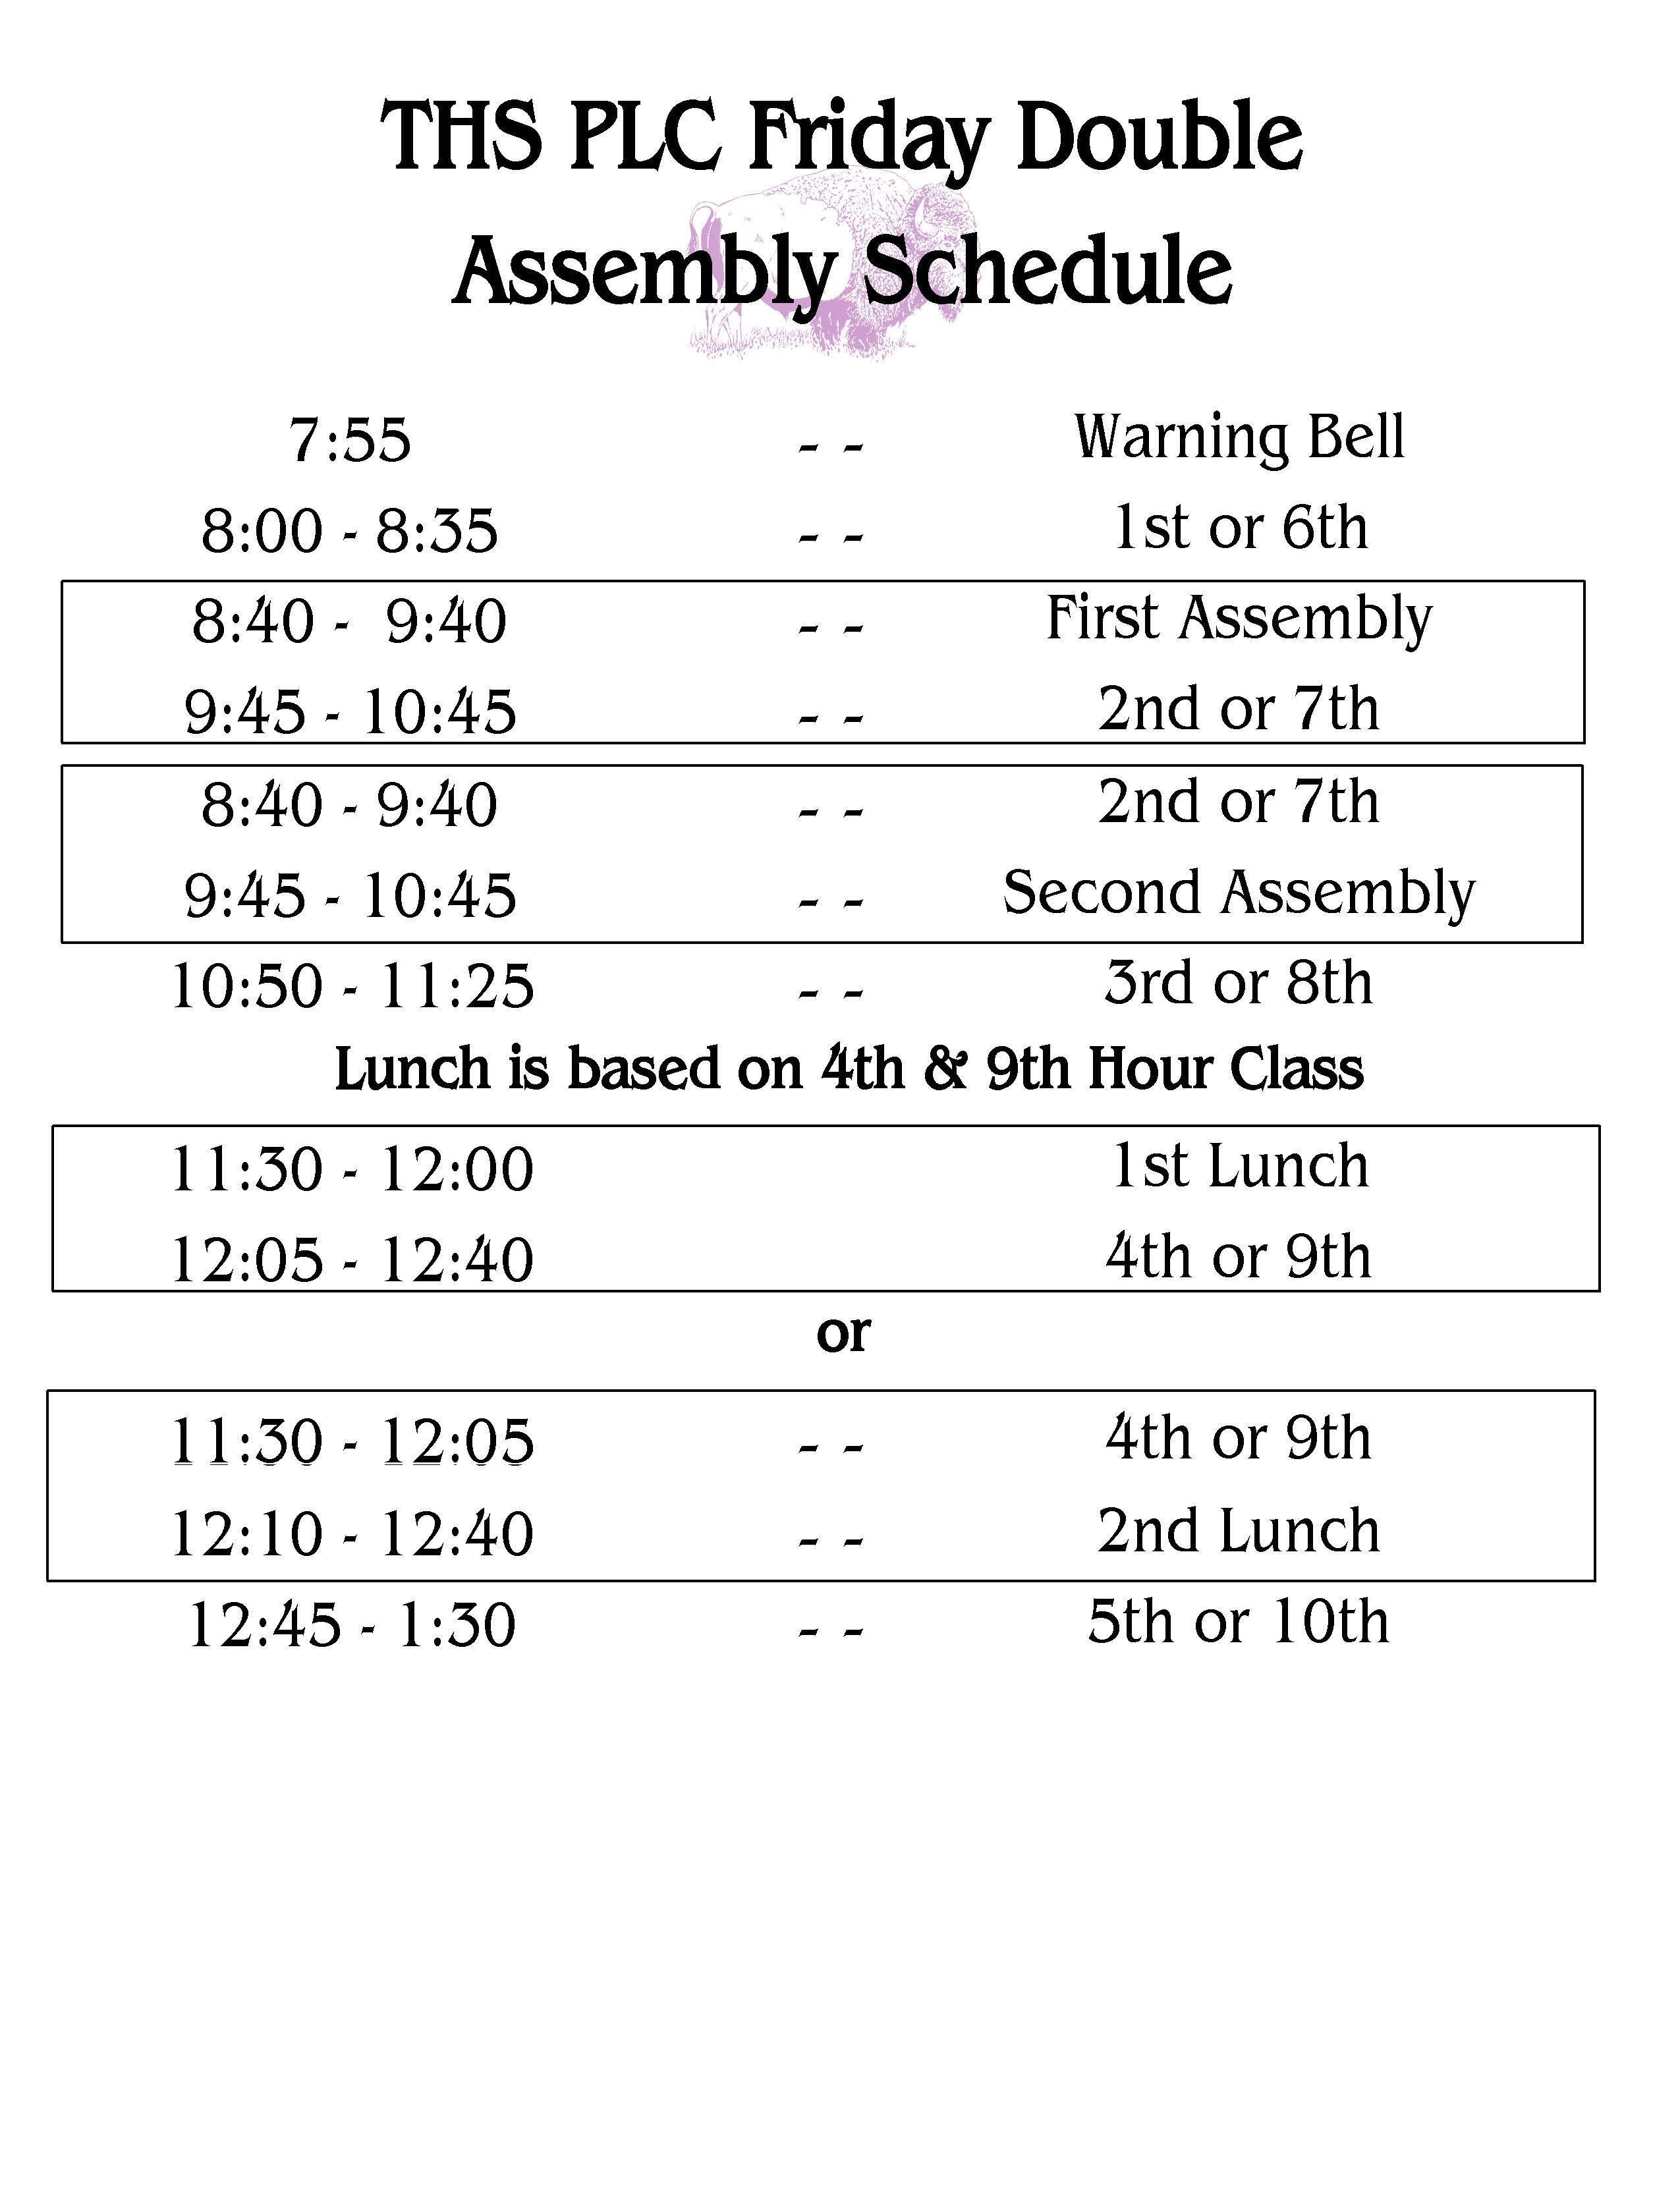 Friday Double Assembly Schedule